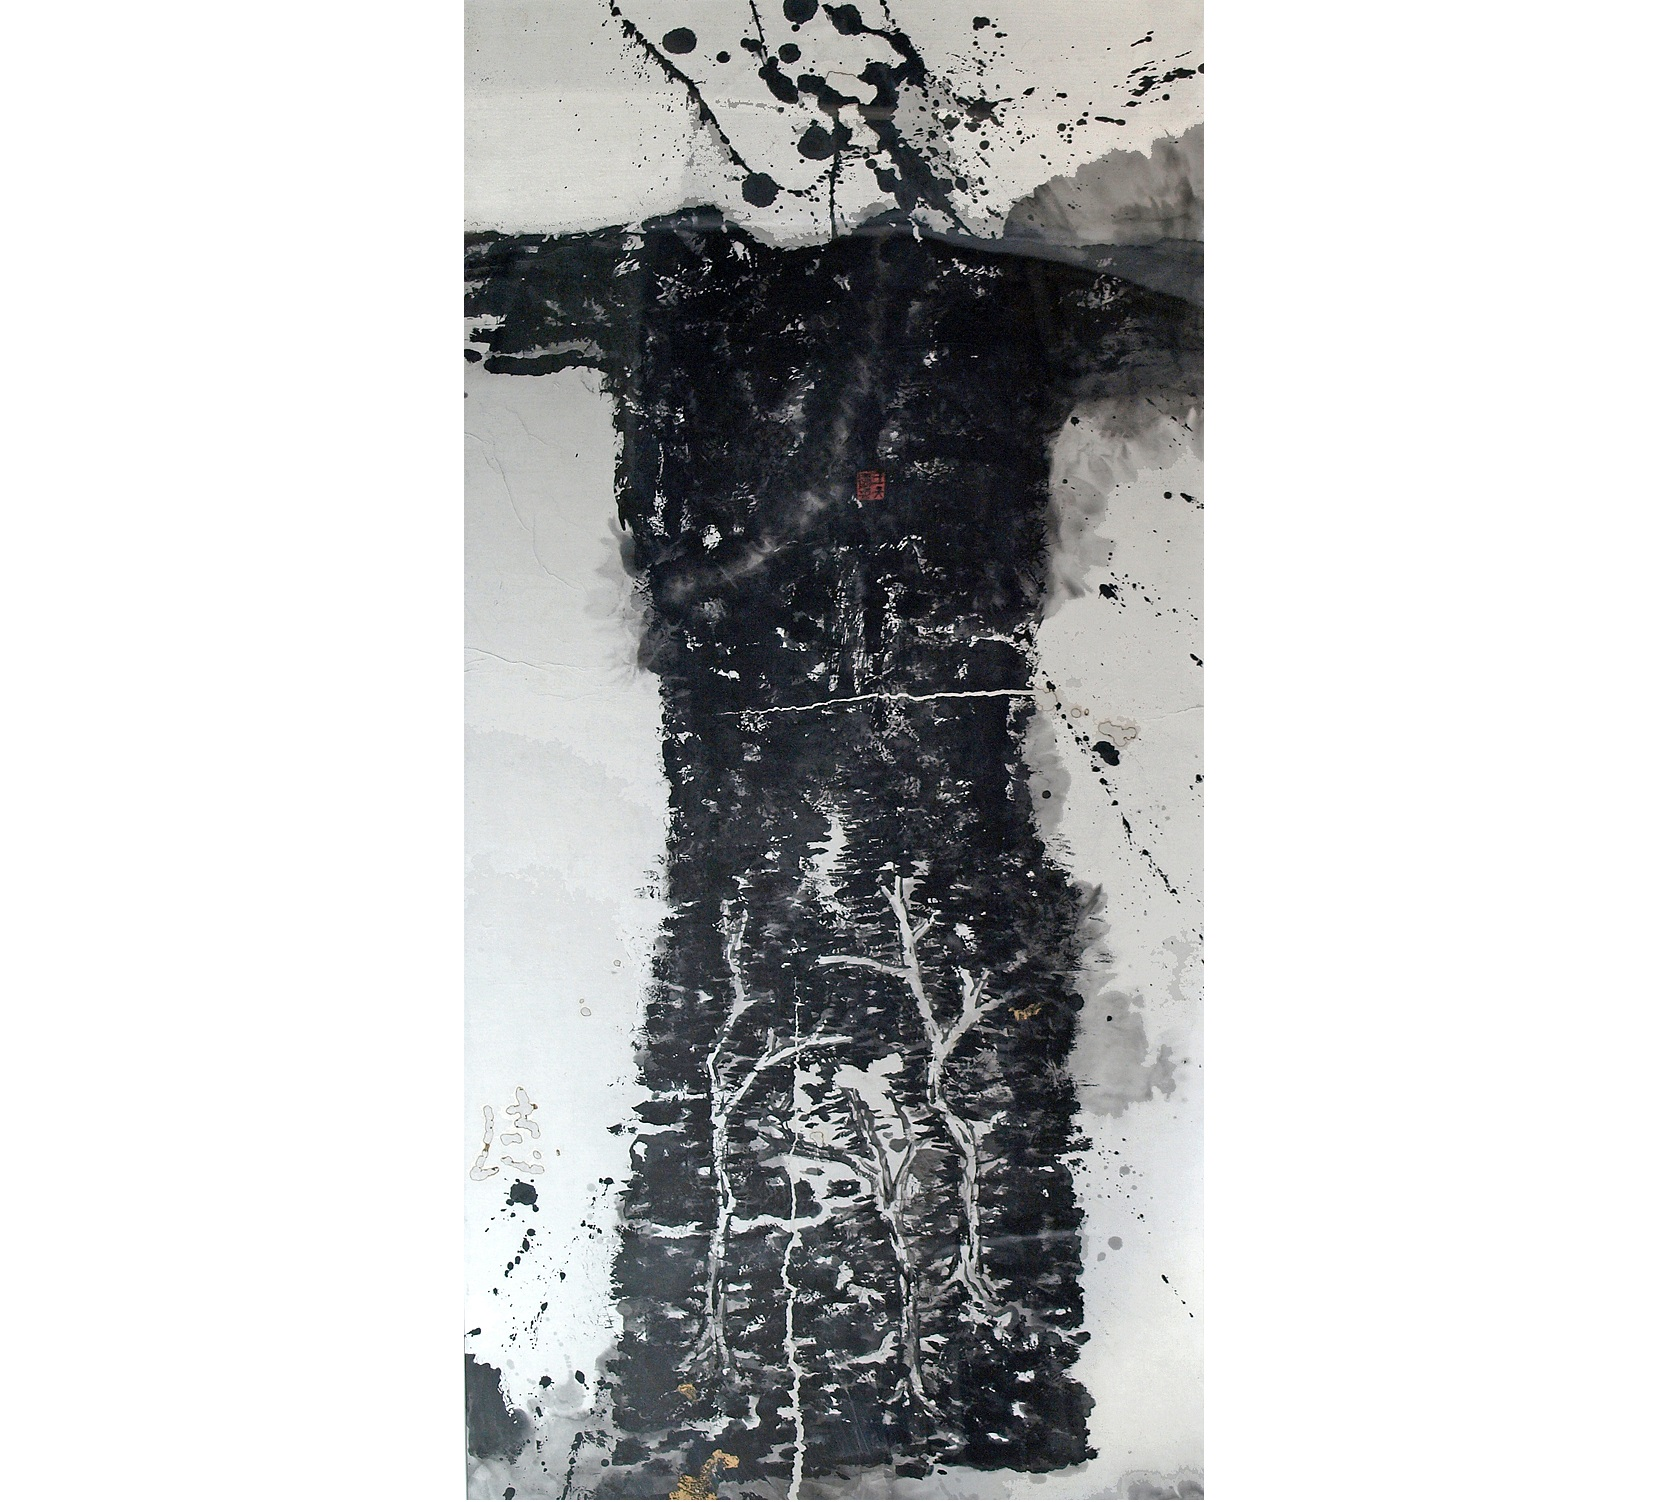 Chinese Clothes No.05 Fn02, 2005, 53 x 26 inches, Ink paper copper powder